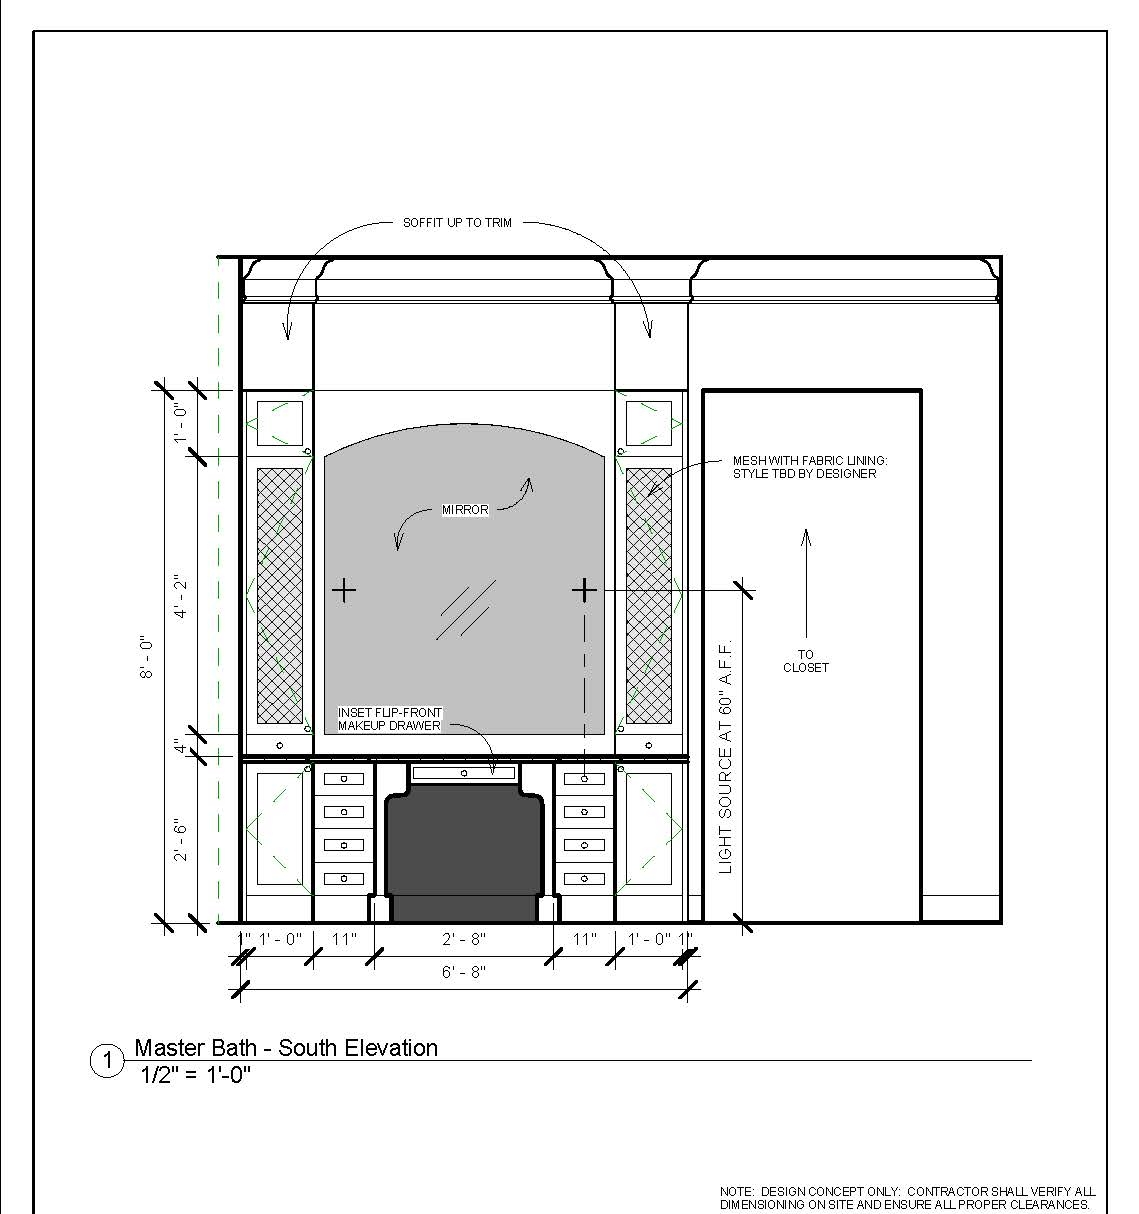 Speed Residence - 2017.11.20 - Revised NOT FINAL_Page_8.jpg